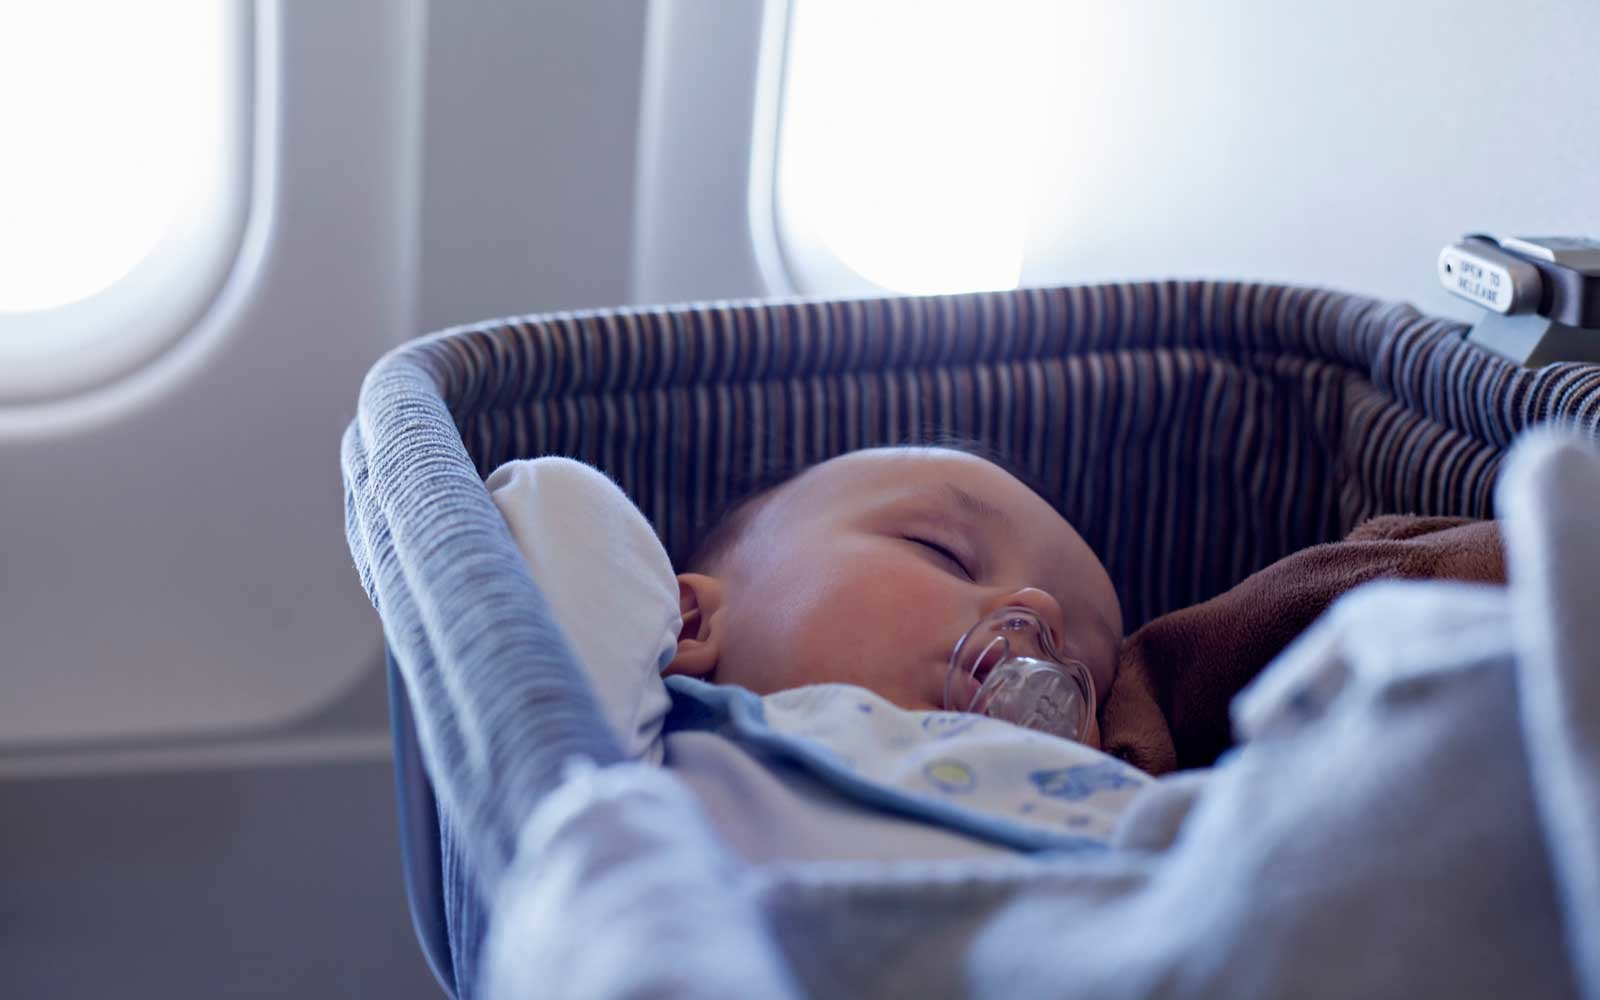 Baby Sleeping In Bassinet On Airplane